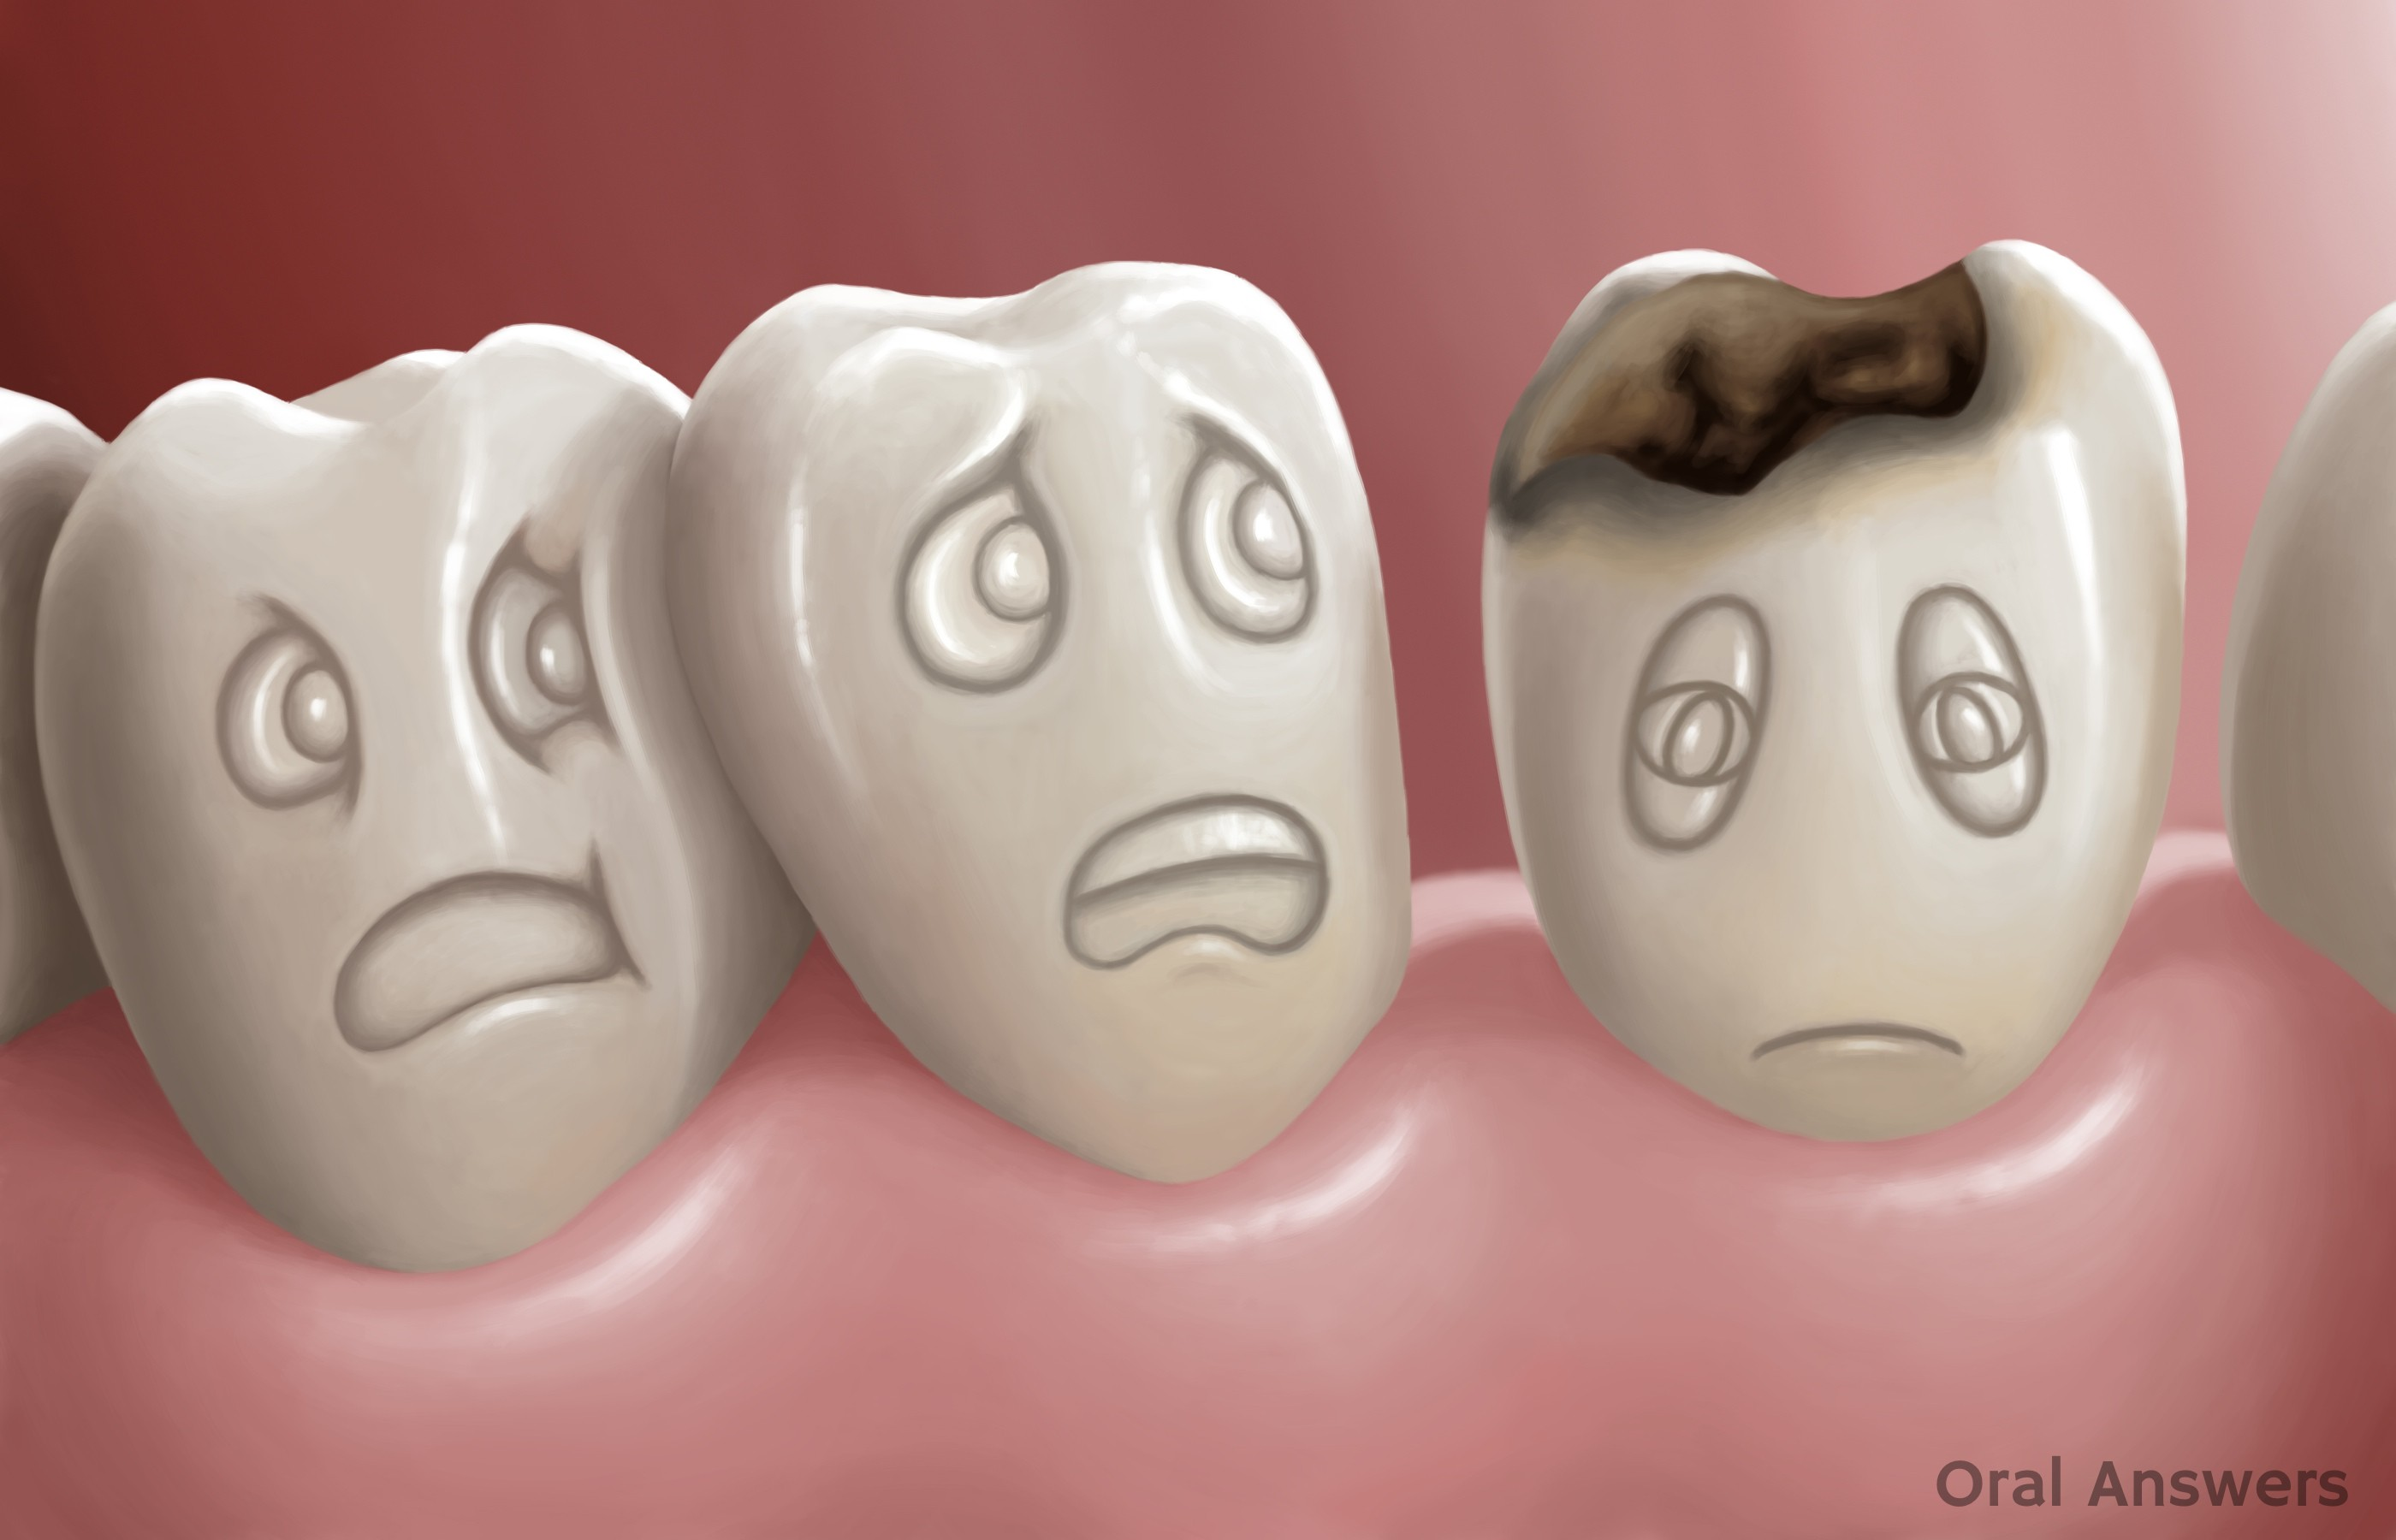 Tooth Decay A Serious Disease Oral Answers